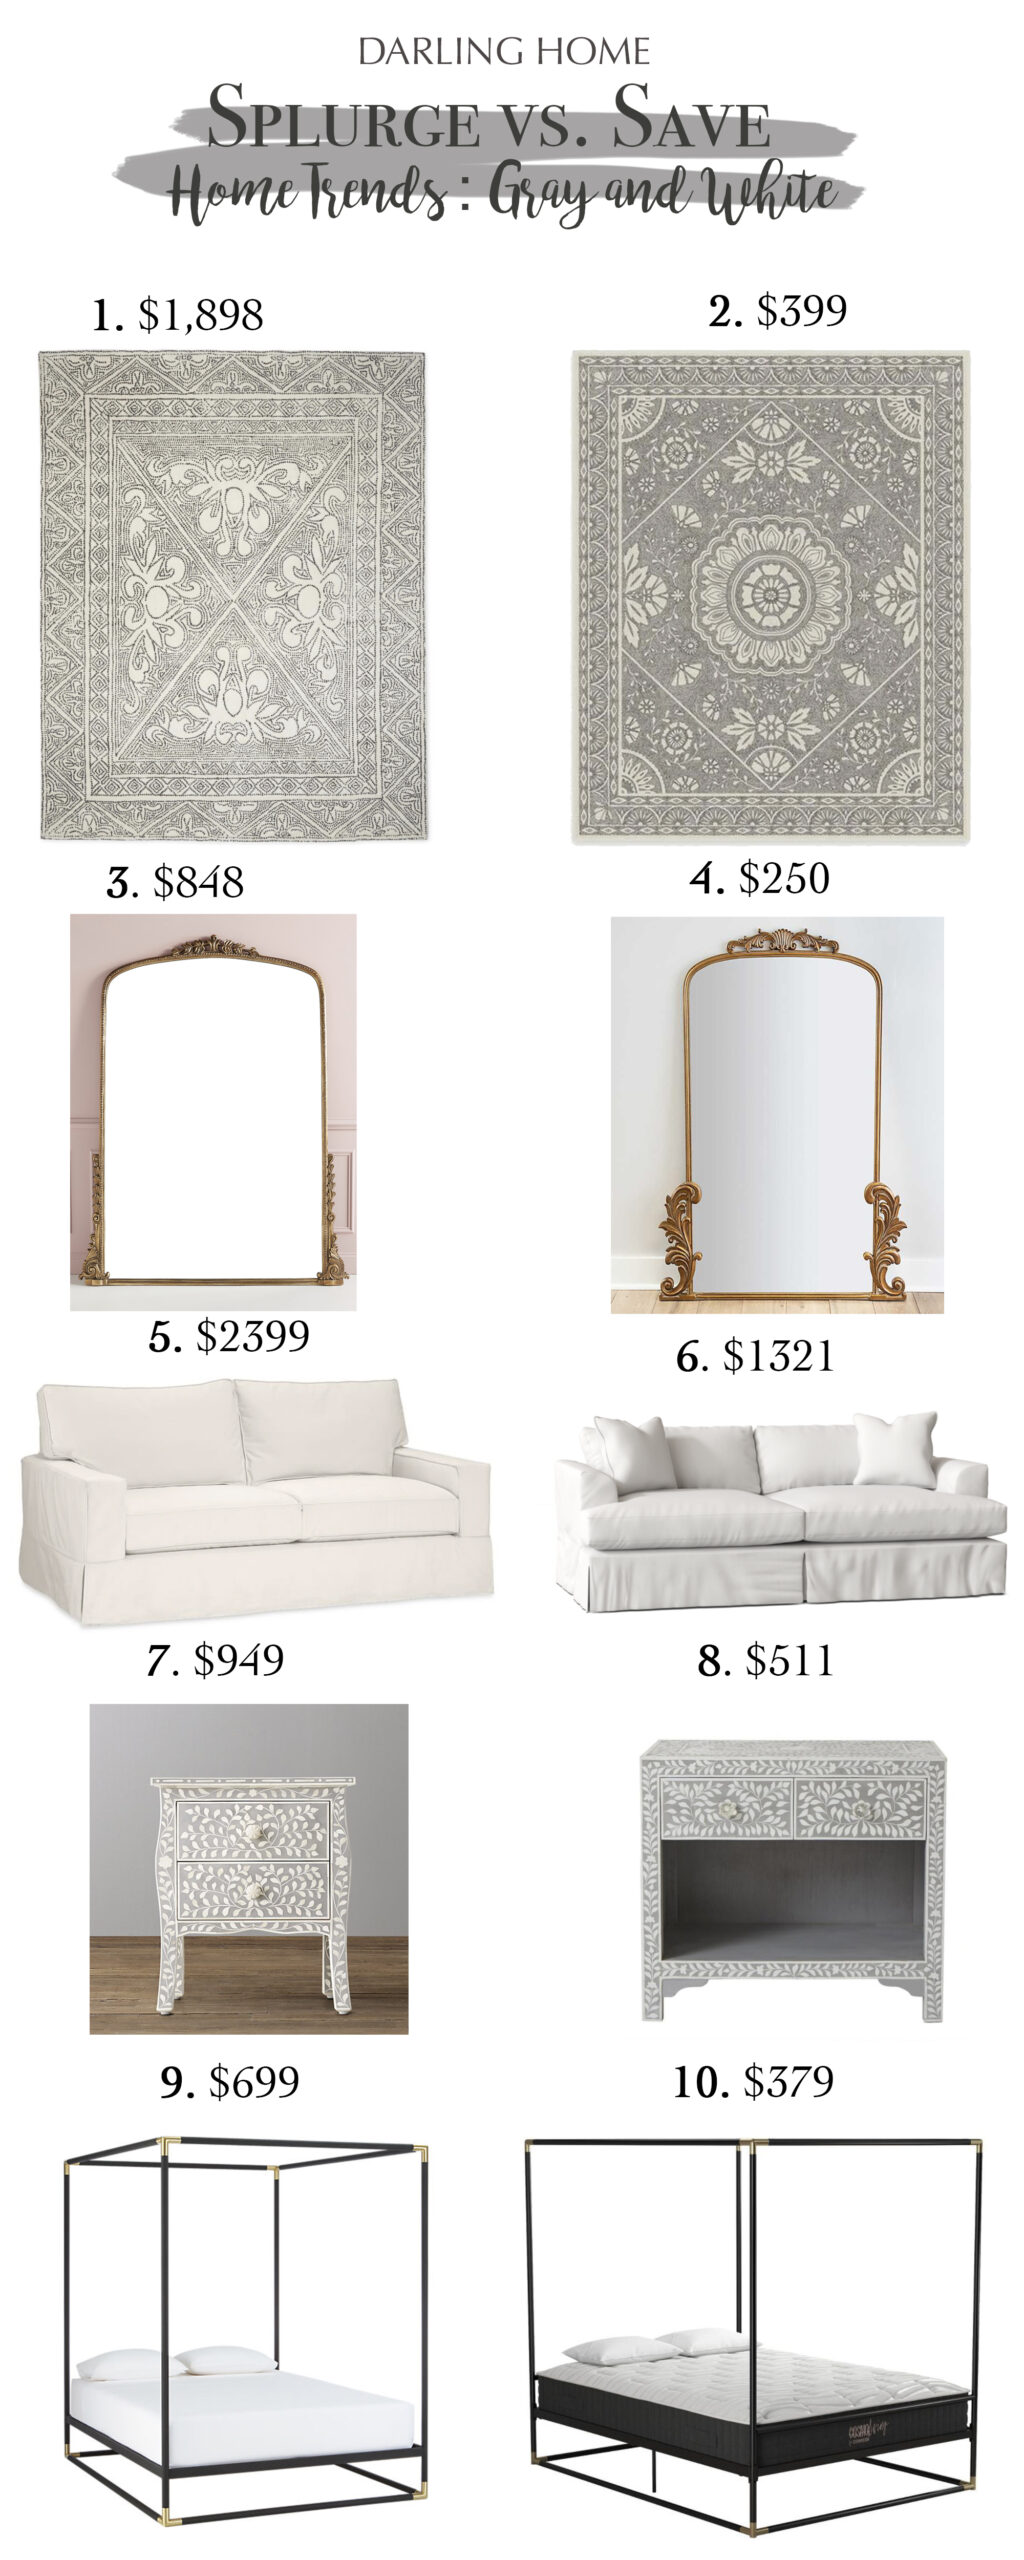 Home trends of grays and whites with Touches of Black.  Check out these Splurge vs. Save: Gray and White || Darling Darleen Top Lifestyle CT Blogger #darlingdarleen #darleenmeier